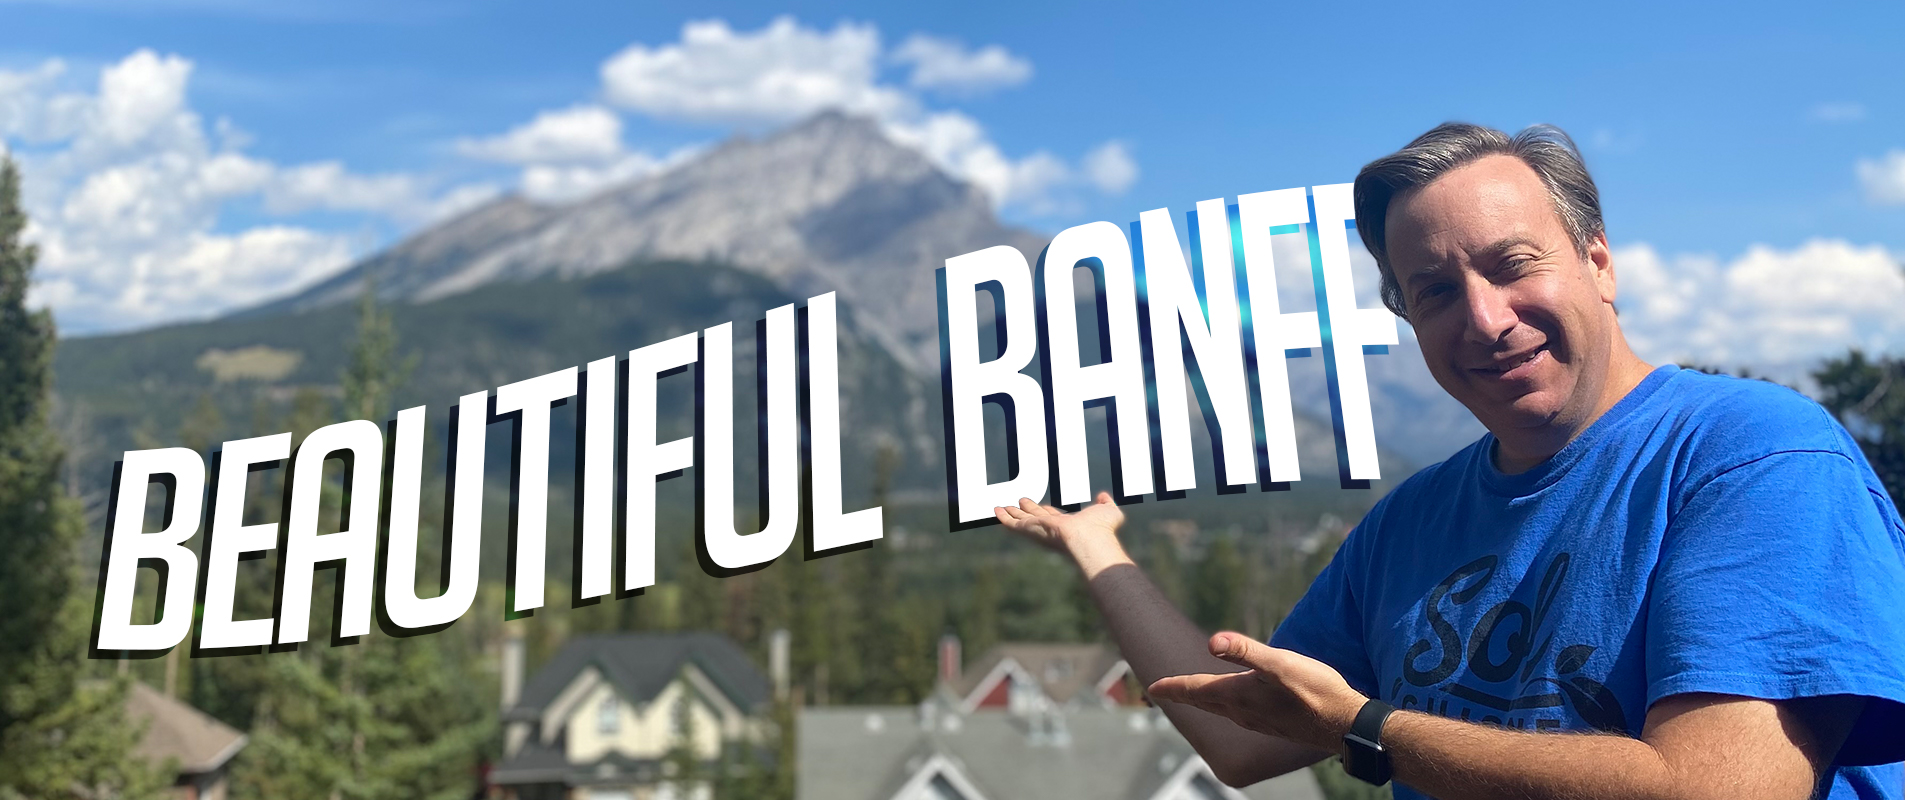 Photo of Dror with Banff in background